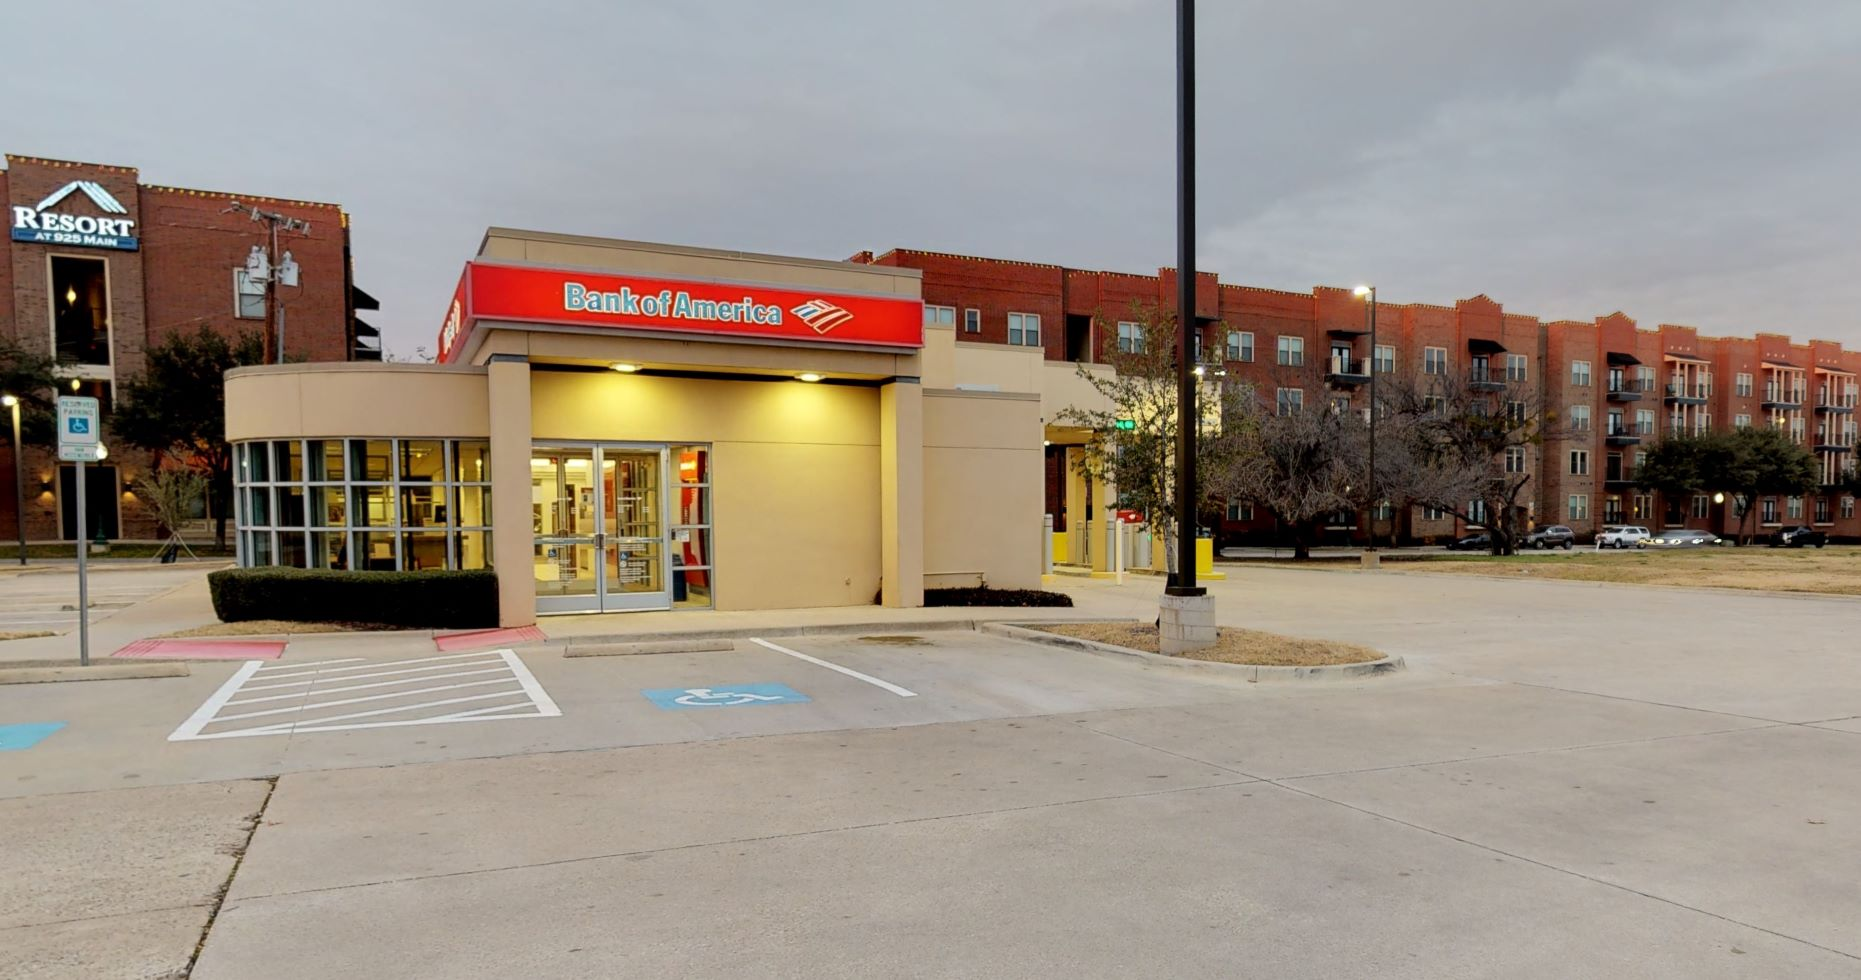 Bank of America financial center with drive-thru ATM   1001 S Main St, Grapevine, TX 76051